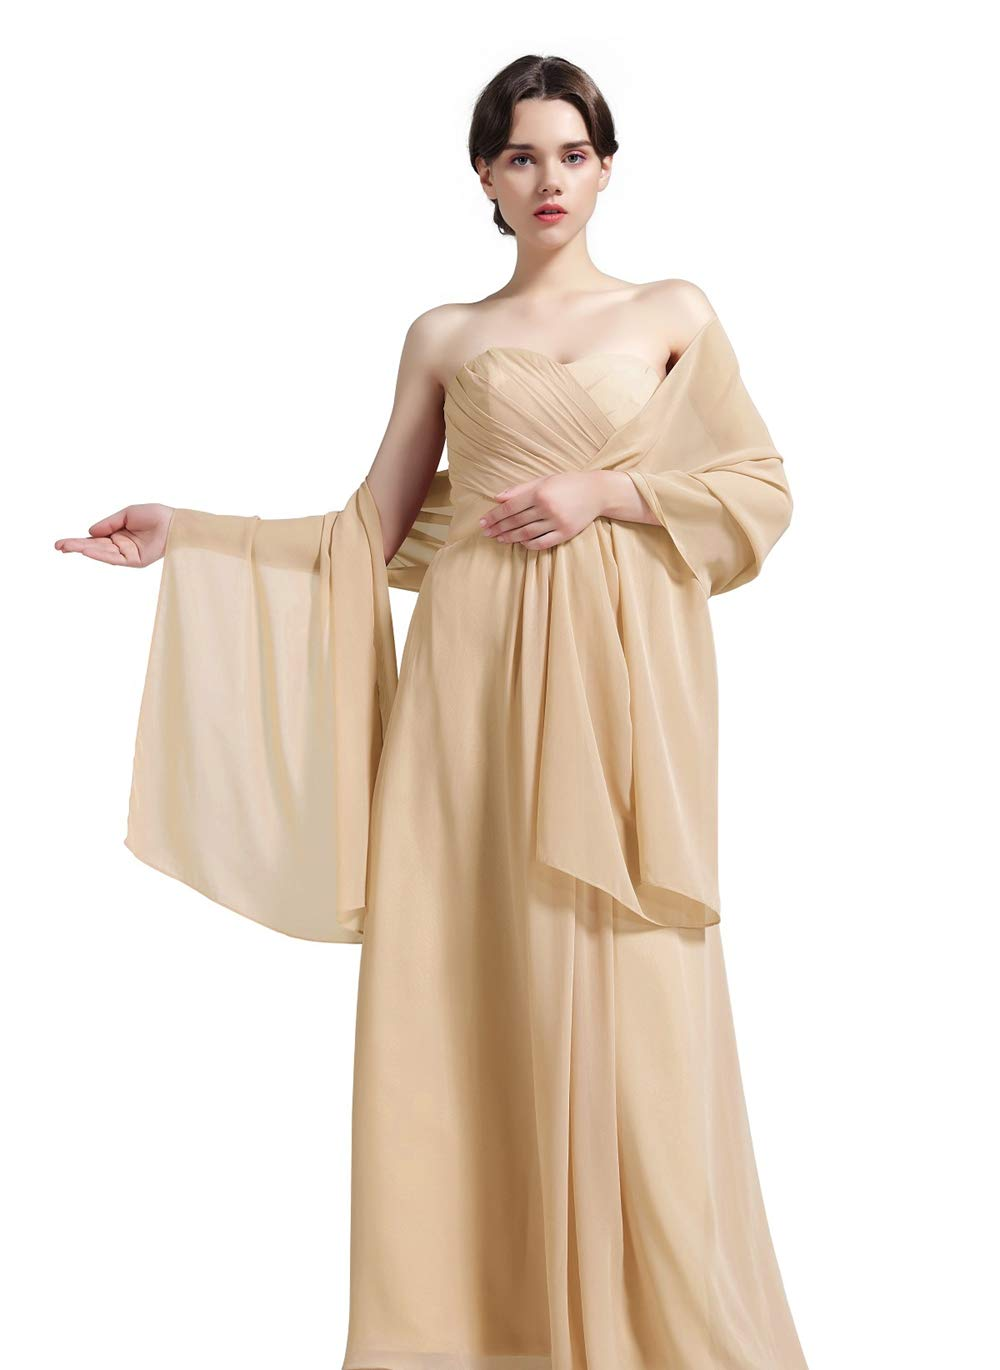 Sheer Soft Chiffon Bridal Women's Shawl For Special Occasions Champagne